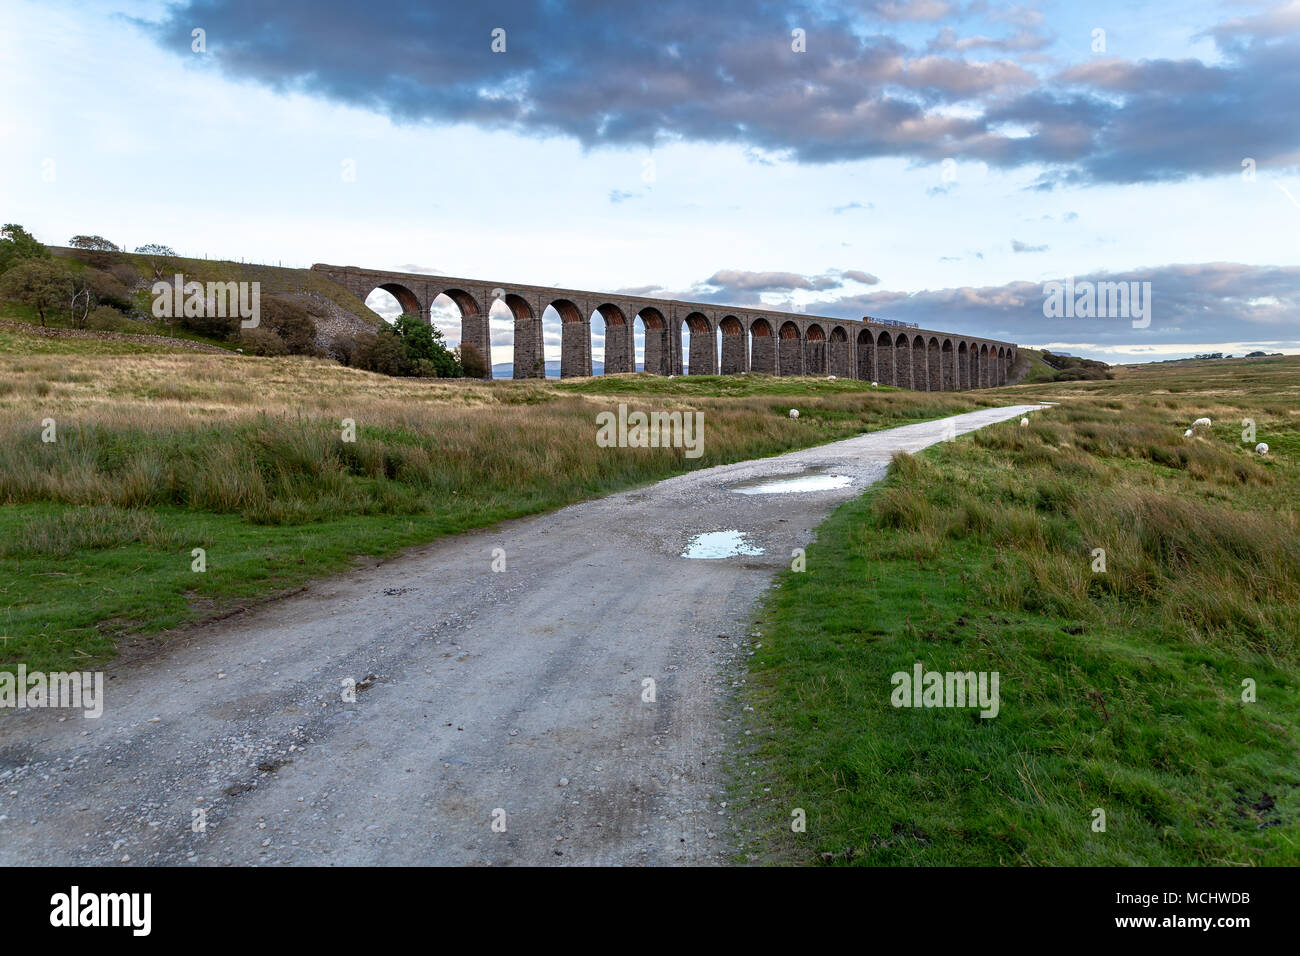 Near Ingleton, North Yorkshire, England, UK - September 11, 2016: A train passing the Ribblehead Viaduct on the Settle-Carlisle Railway Stock Photo